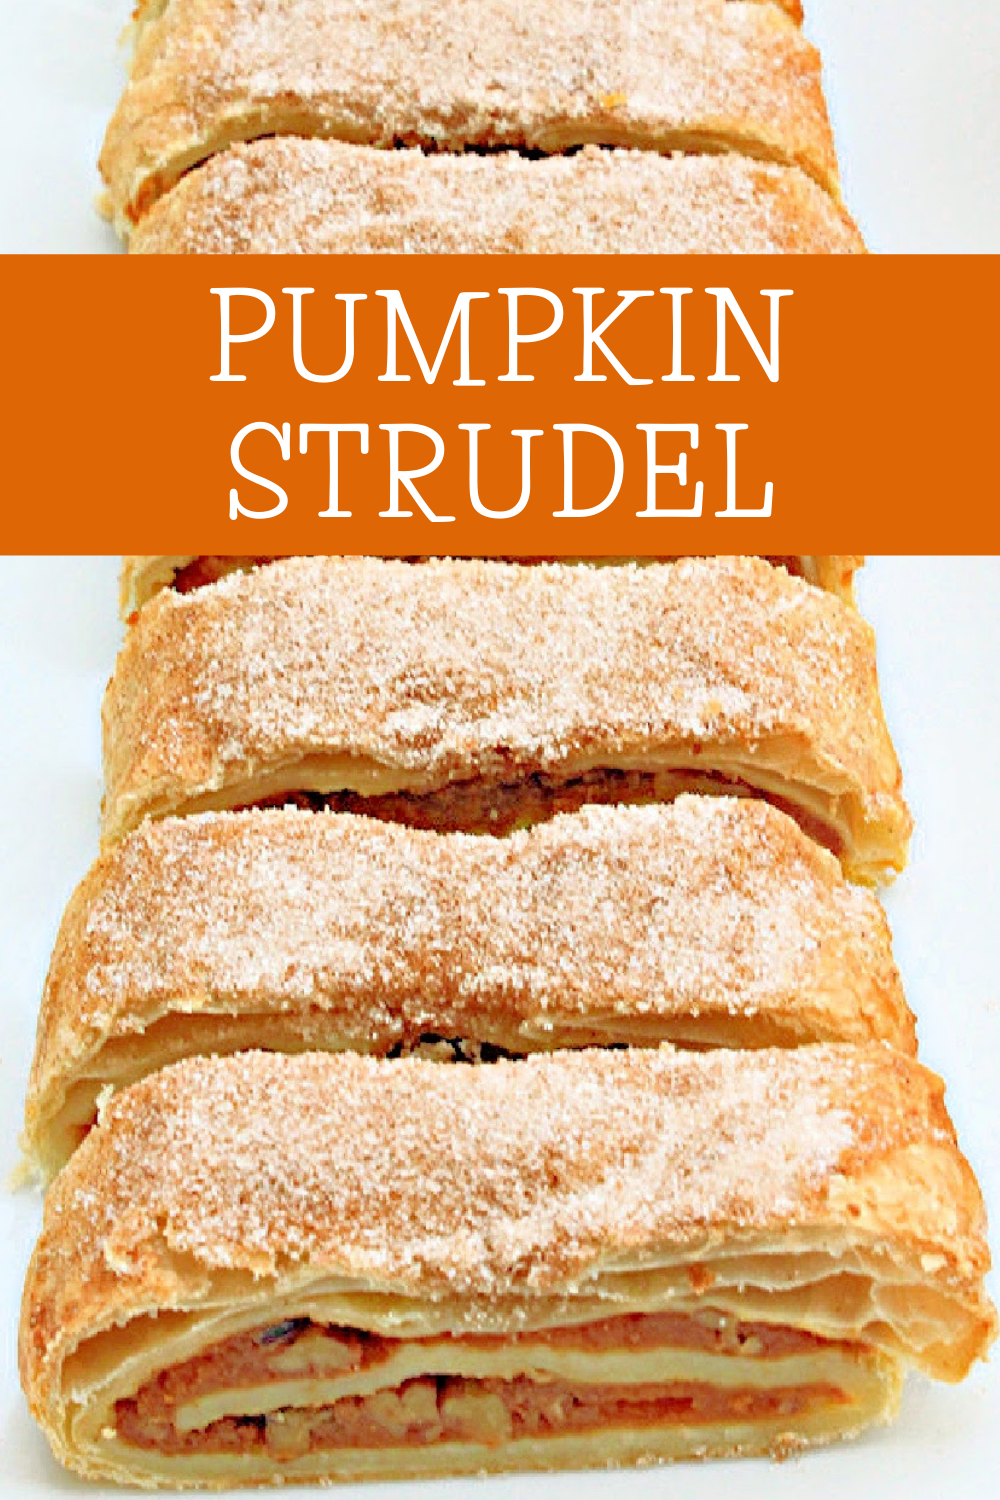 Pumpkin Strudel ~ Puff pastry dough is layered with pumpkin, walnuts, and savory spices of the season then baked until golden! via @thiswifecooks